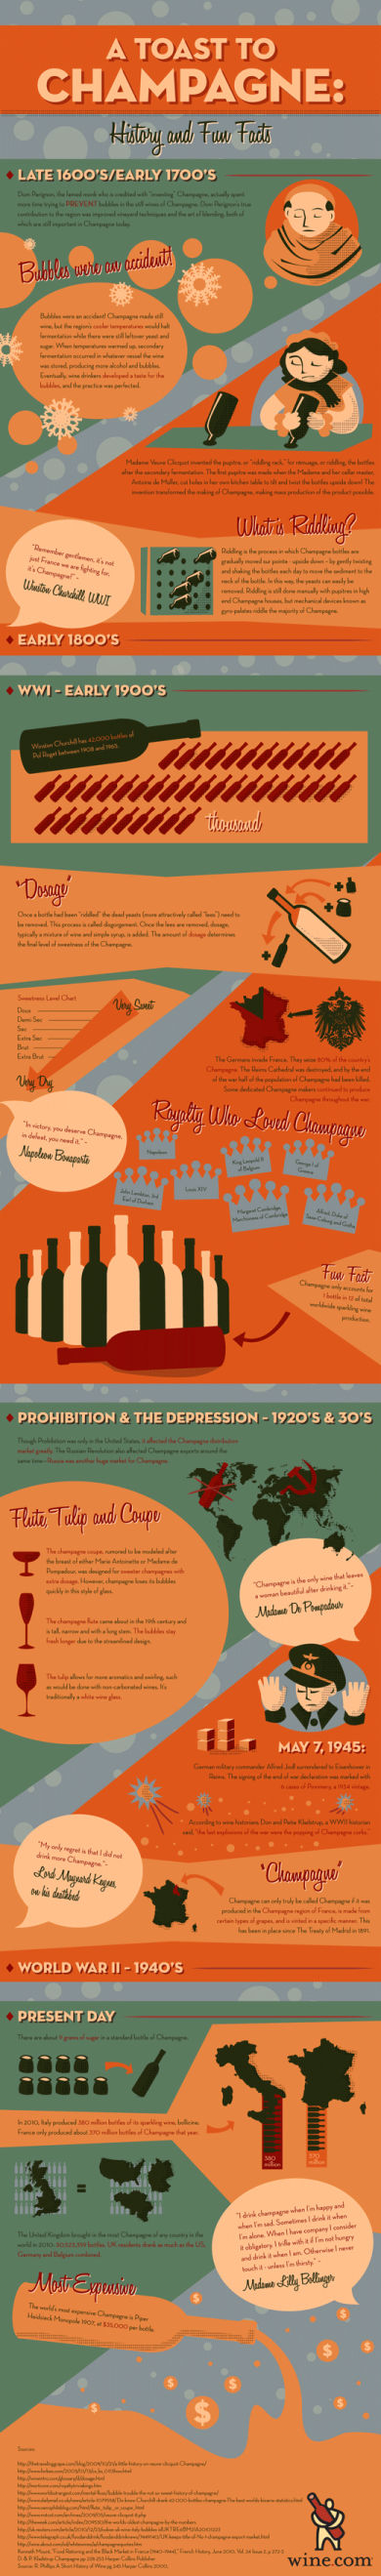 Champagne-Wine-Infographic-390